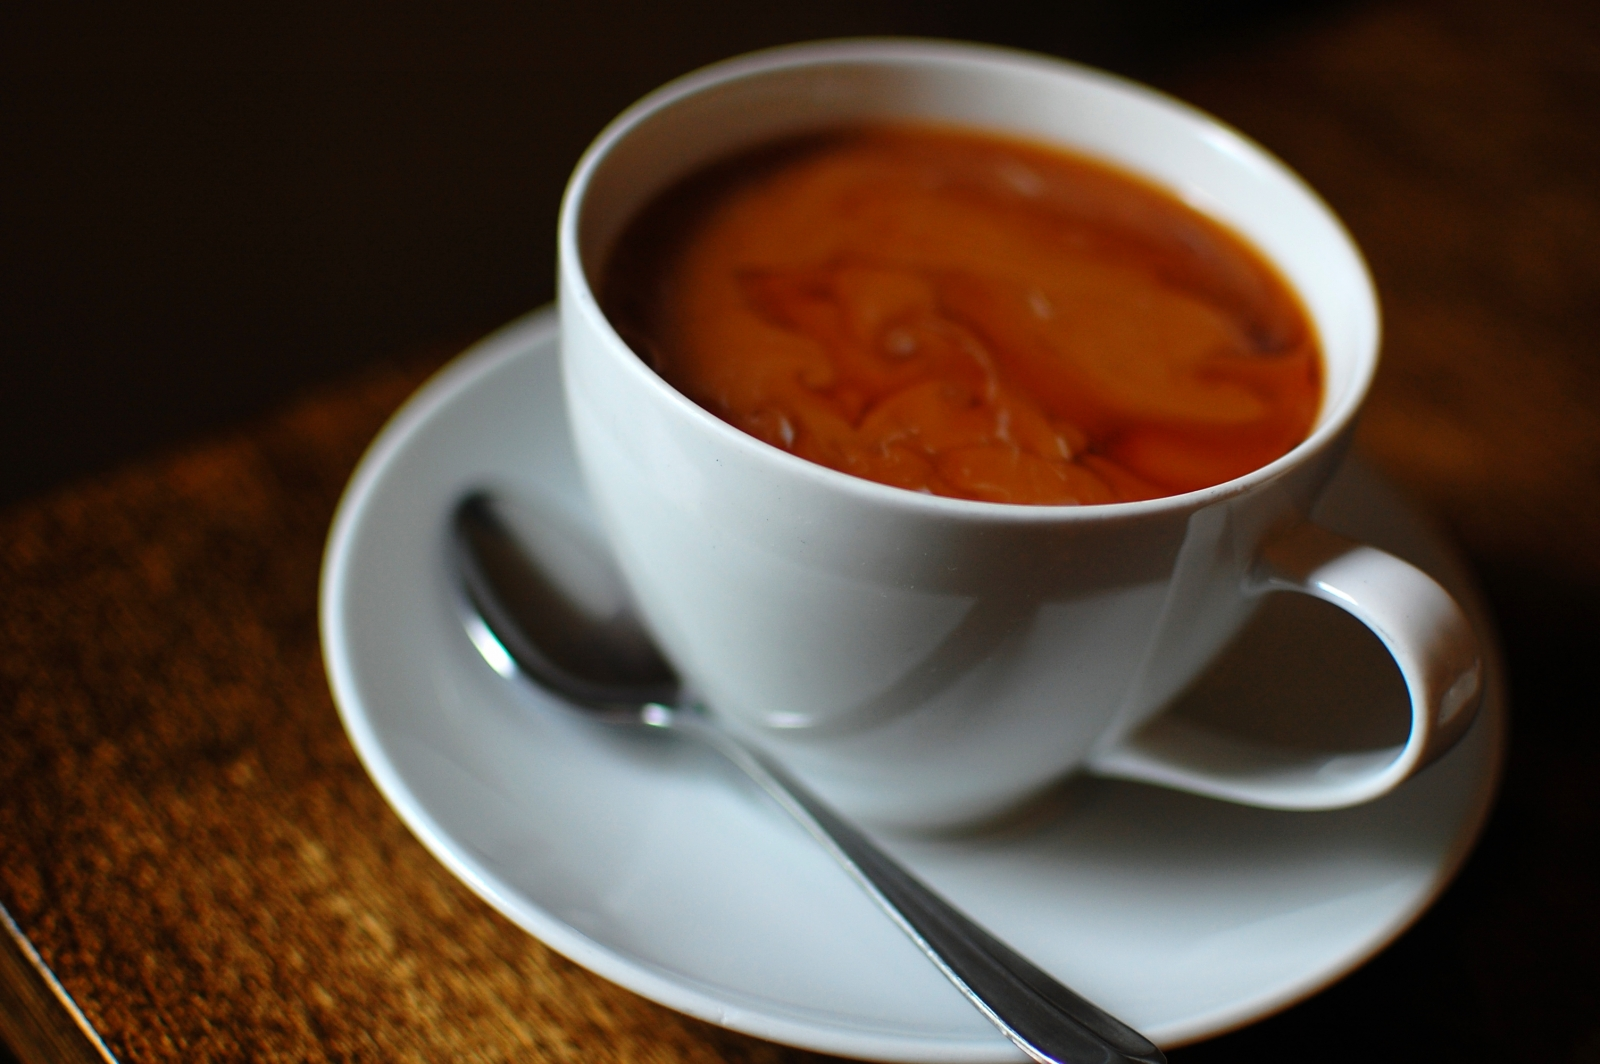 Those who drink more coffee live longer, two studies show